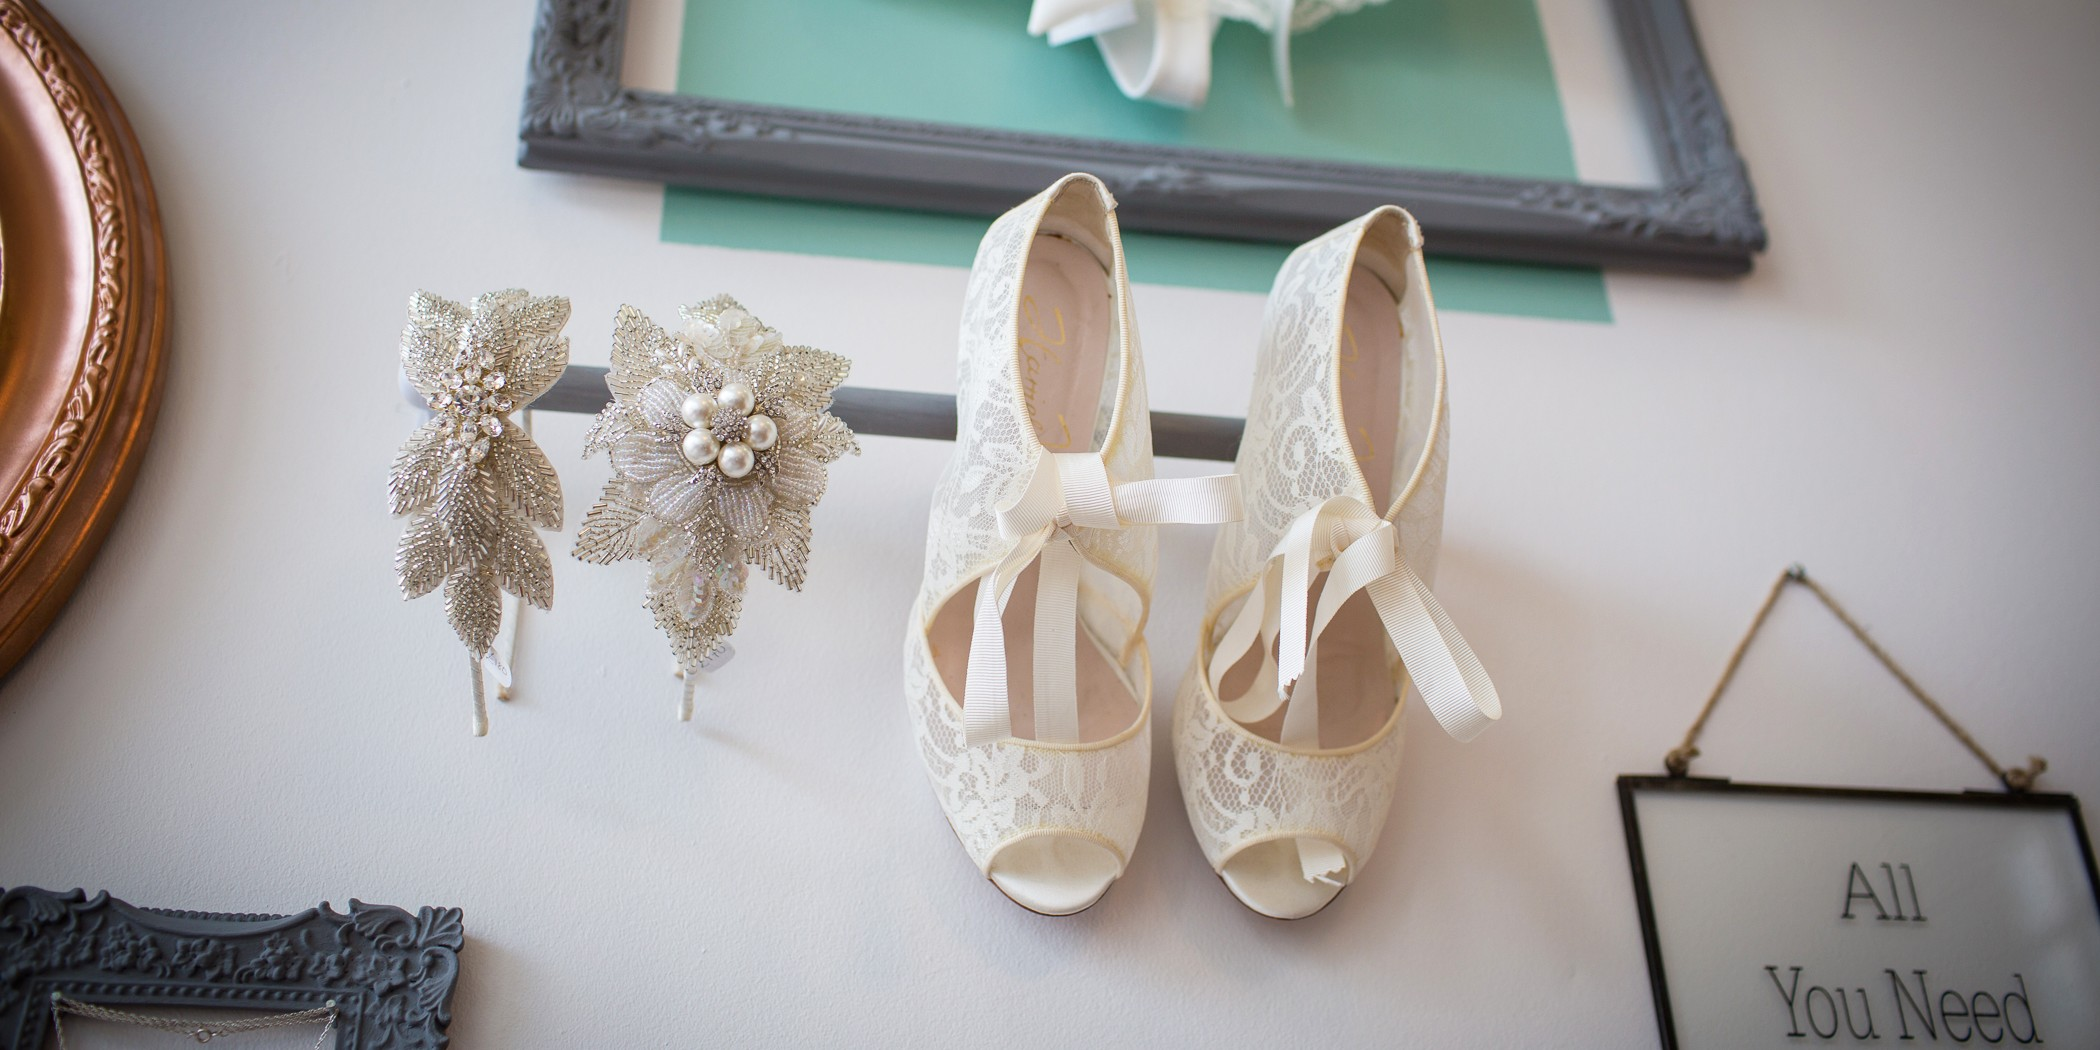 The exciting #restyle at Cicily Bridal - Cicily's Accessories